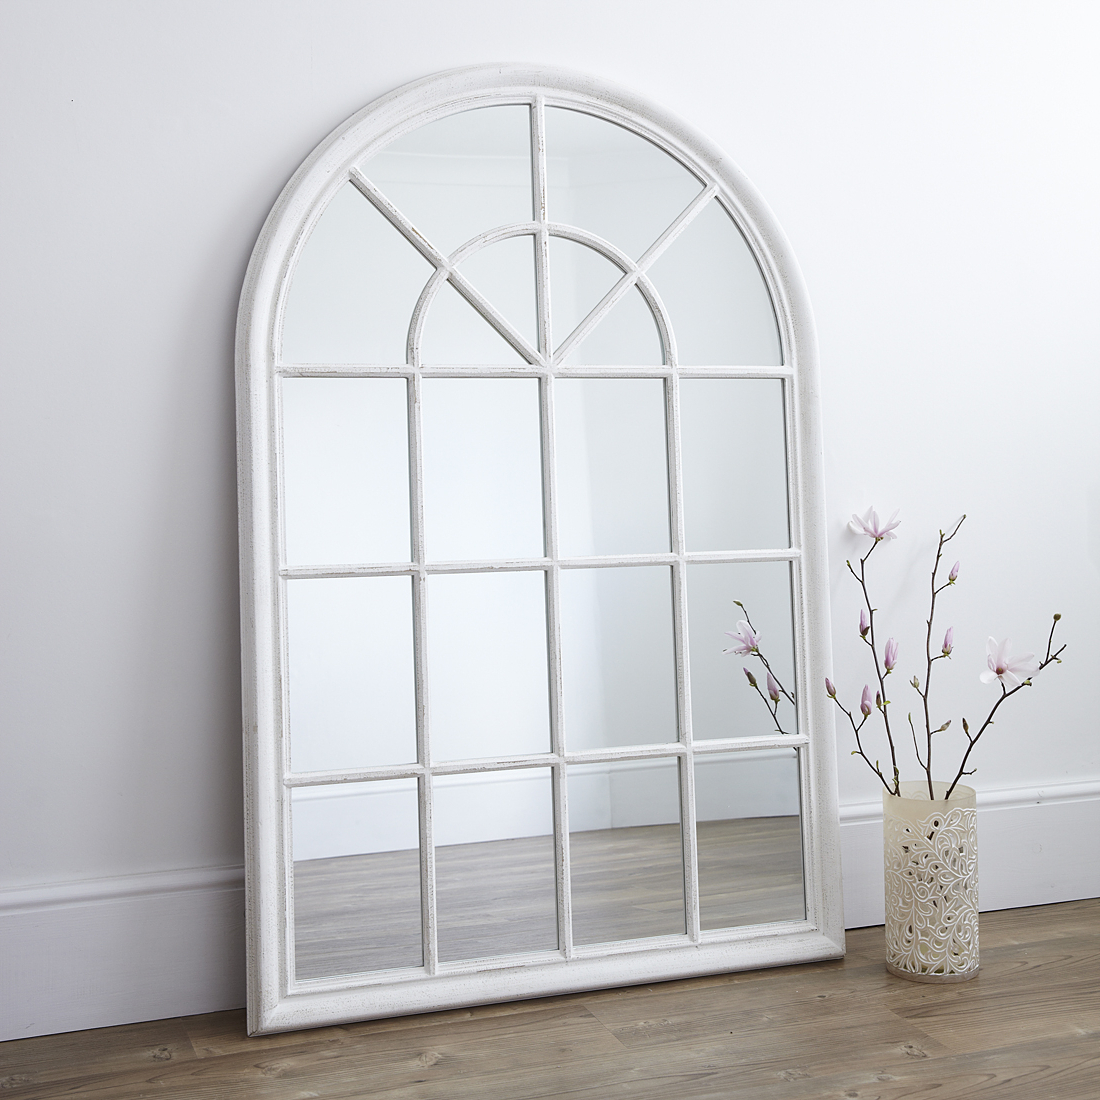 Metal Arch Window Wall Mirrors Throughout Widely Used White Arched Window Wall Mirror (Gallery 3 of 20)